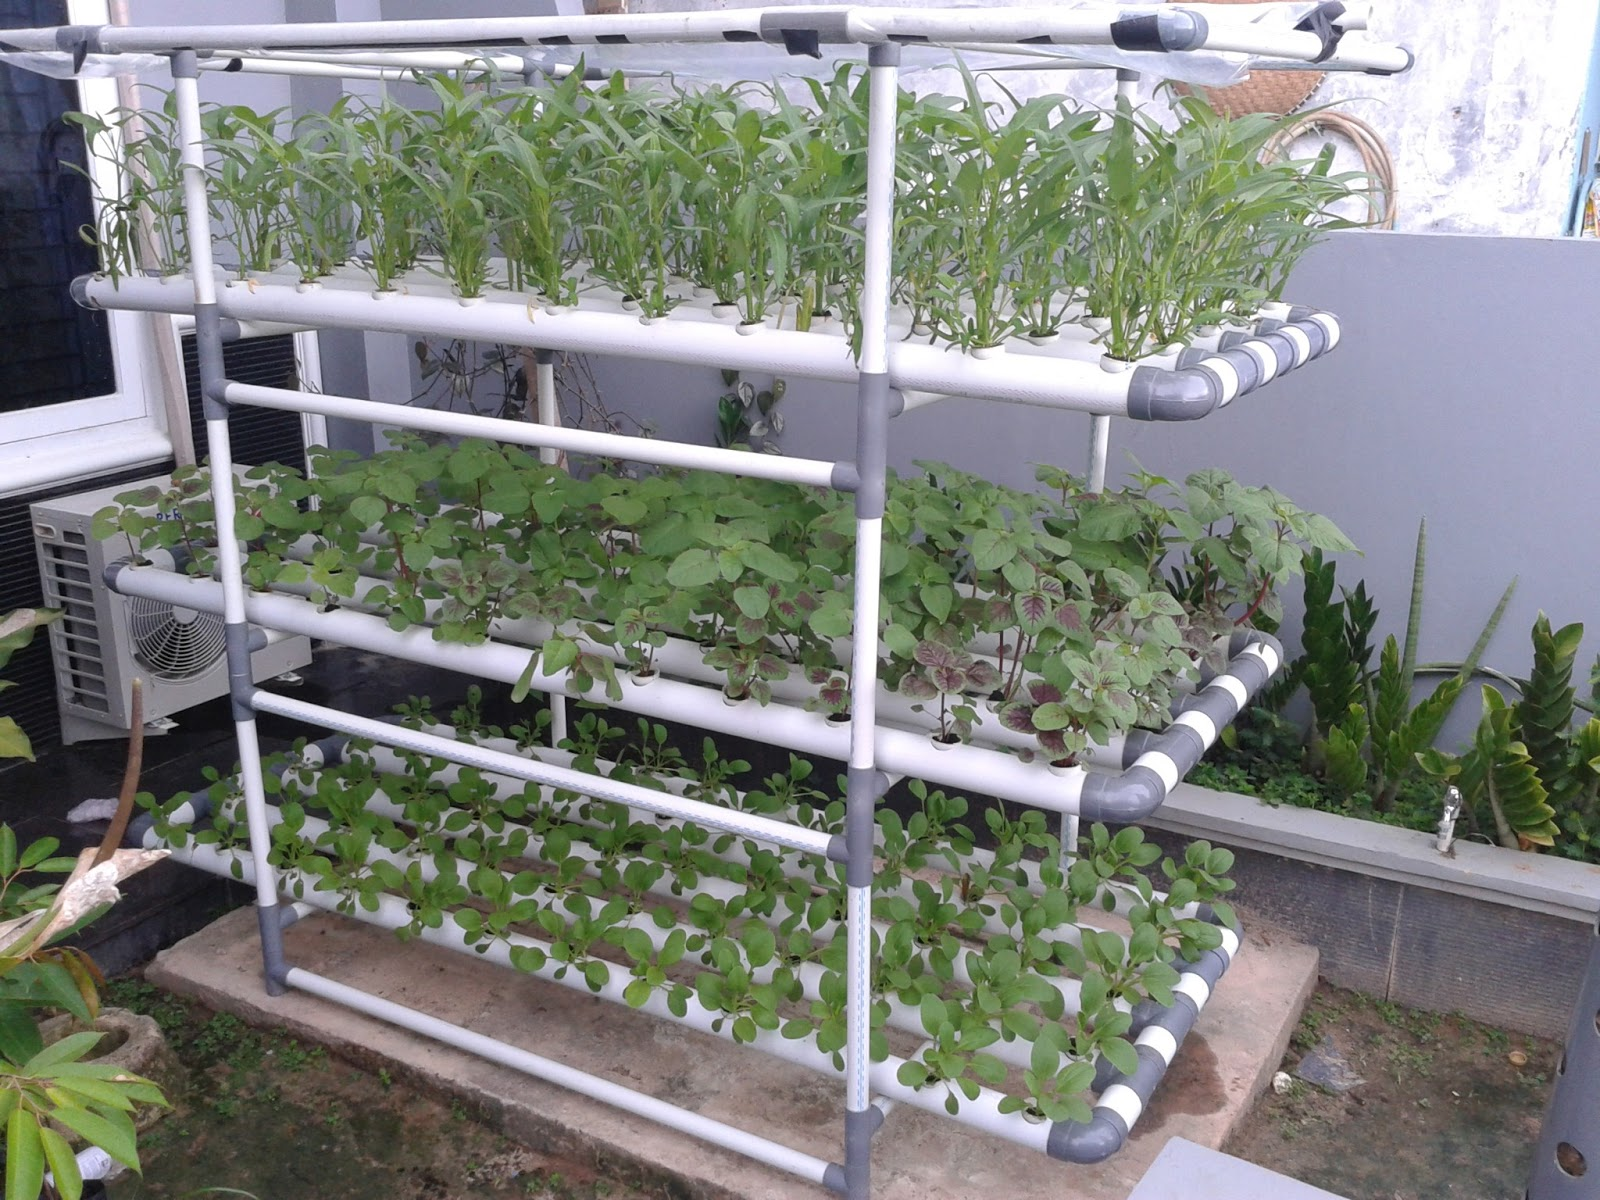 How To Make Easy Hydroponics At Home And Urban Farmer